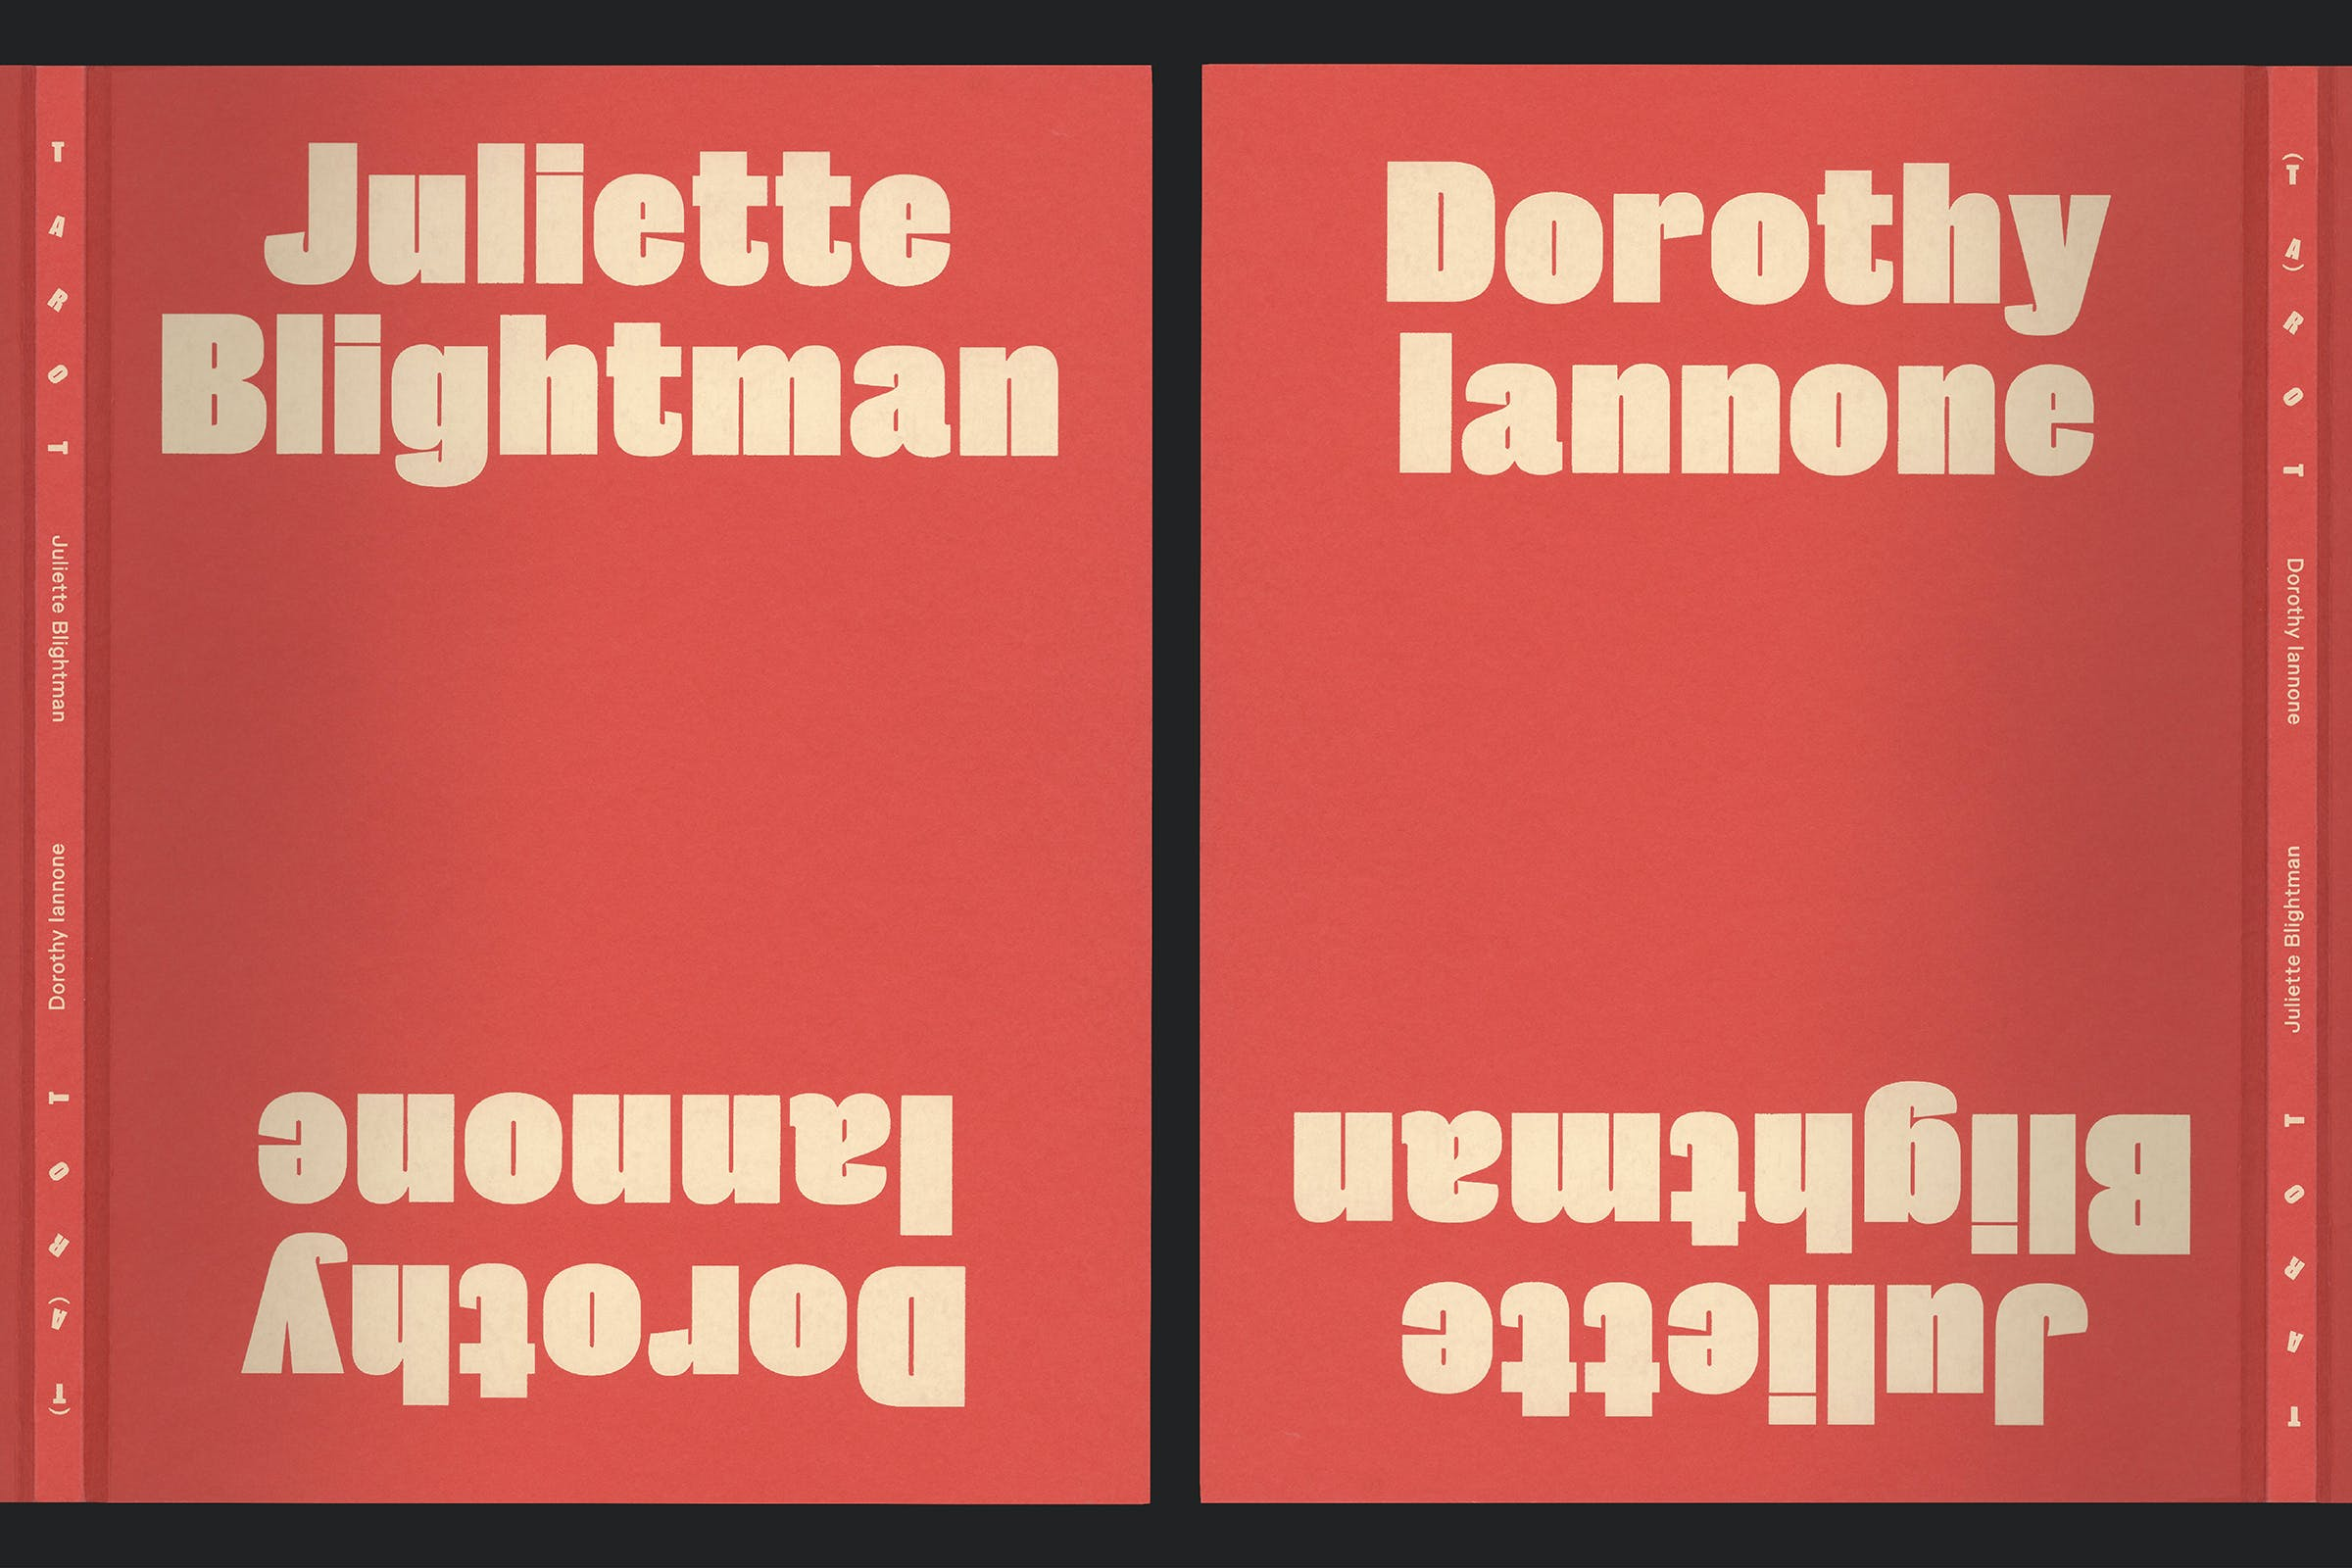 Juliette Blightman, Dorothy Iannone, Vleeshal, Kölnischer Kunstverein, London, Graphic Design by Wolfe Hall